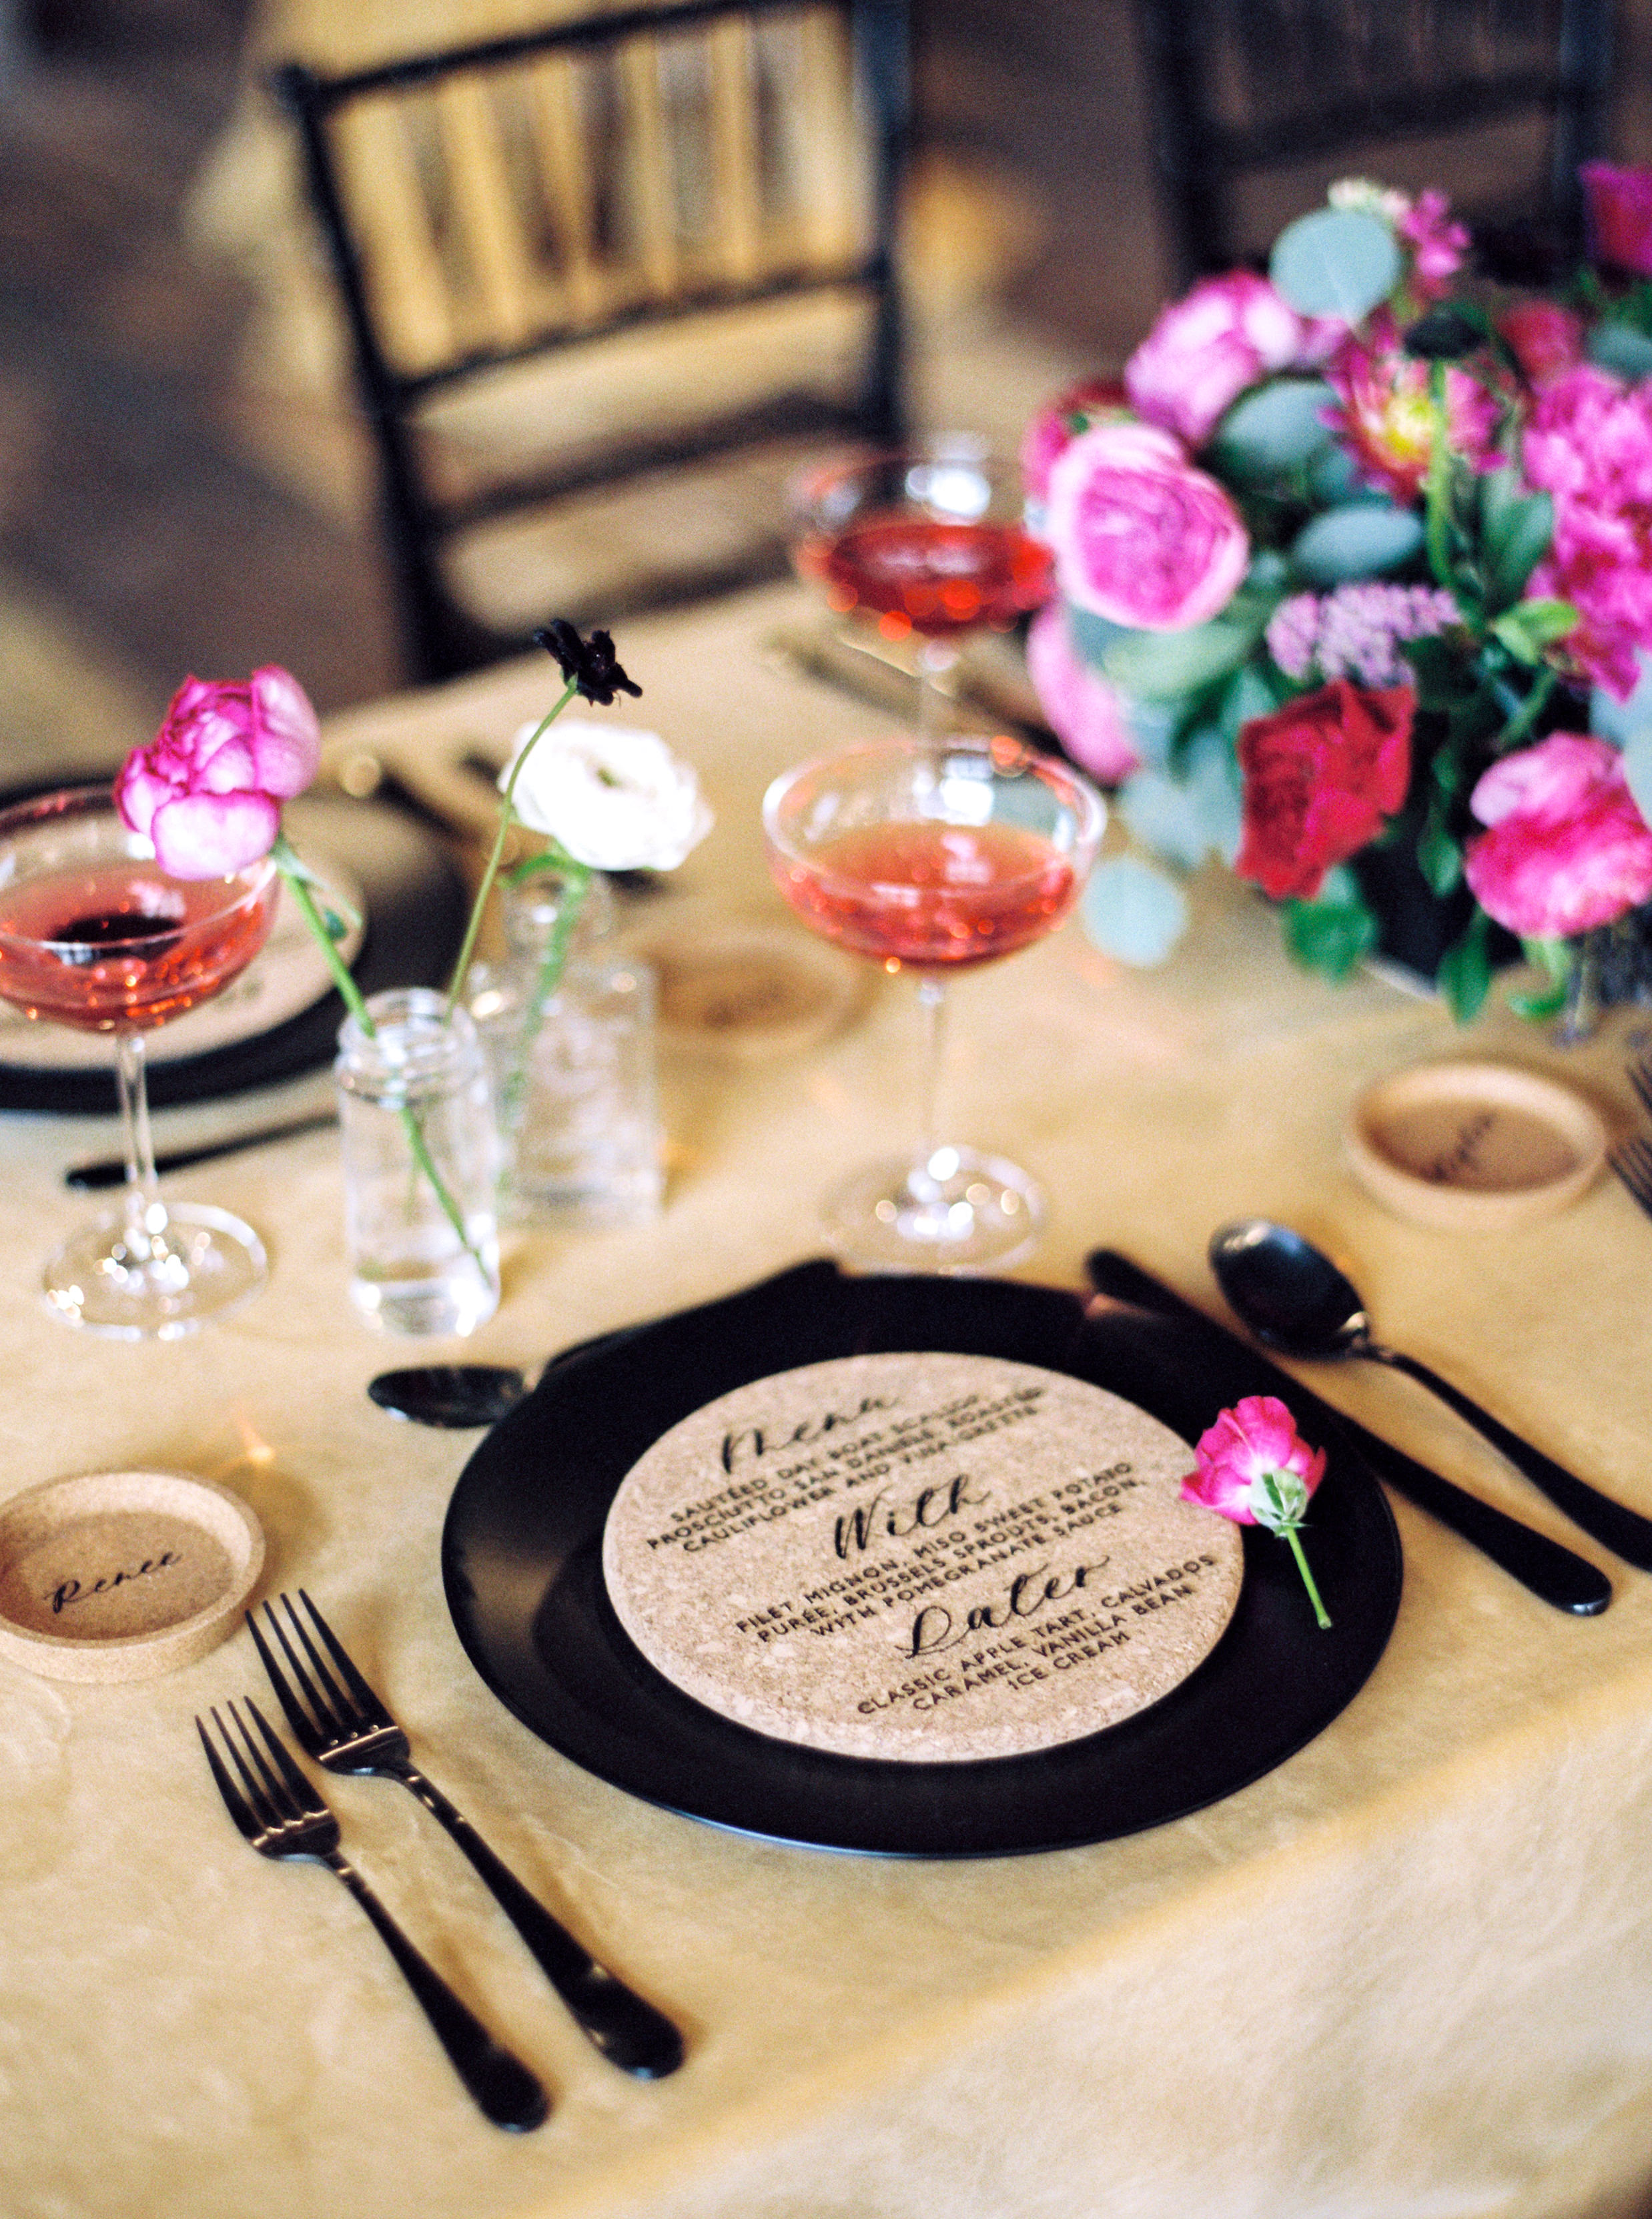 boho-inspired-wedding-at-casa-bella-in-sunol-california-44.jpg